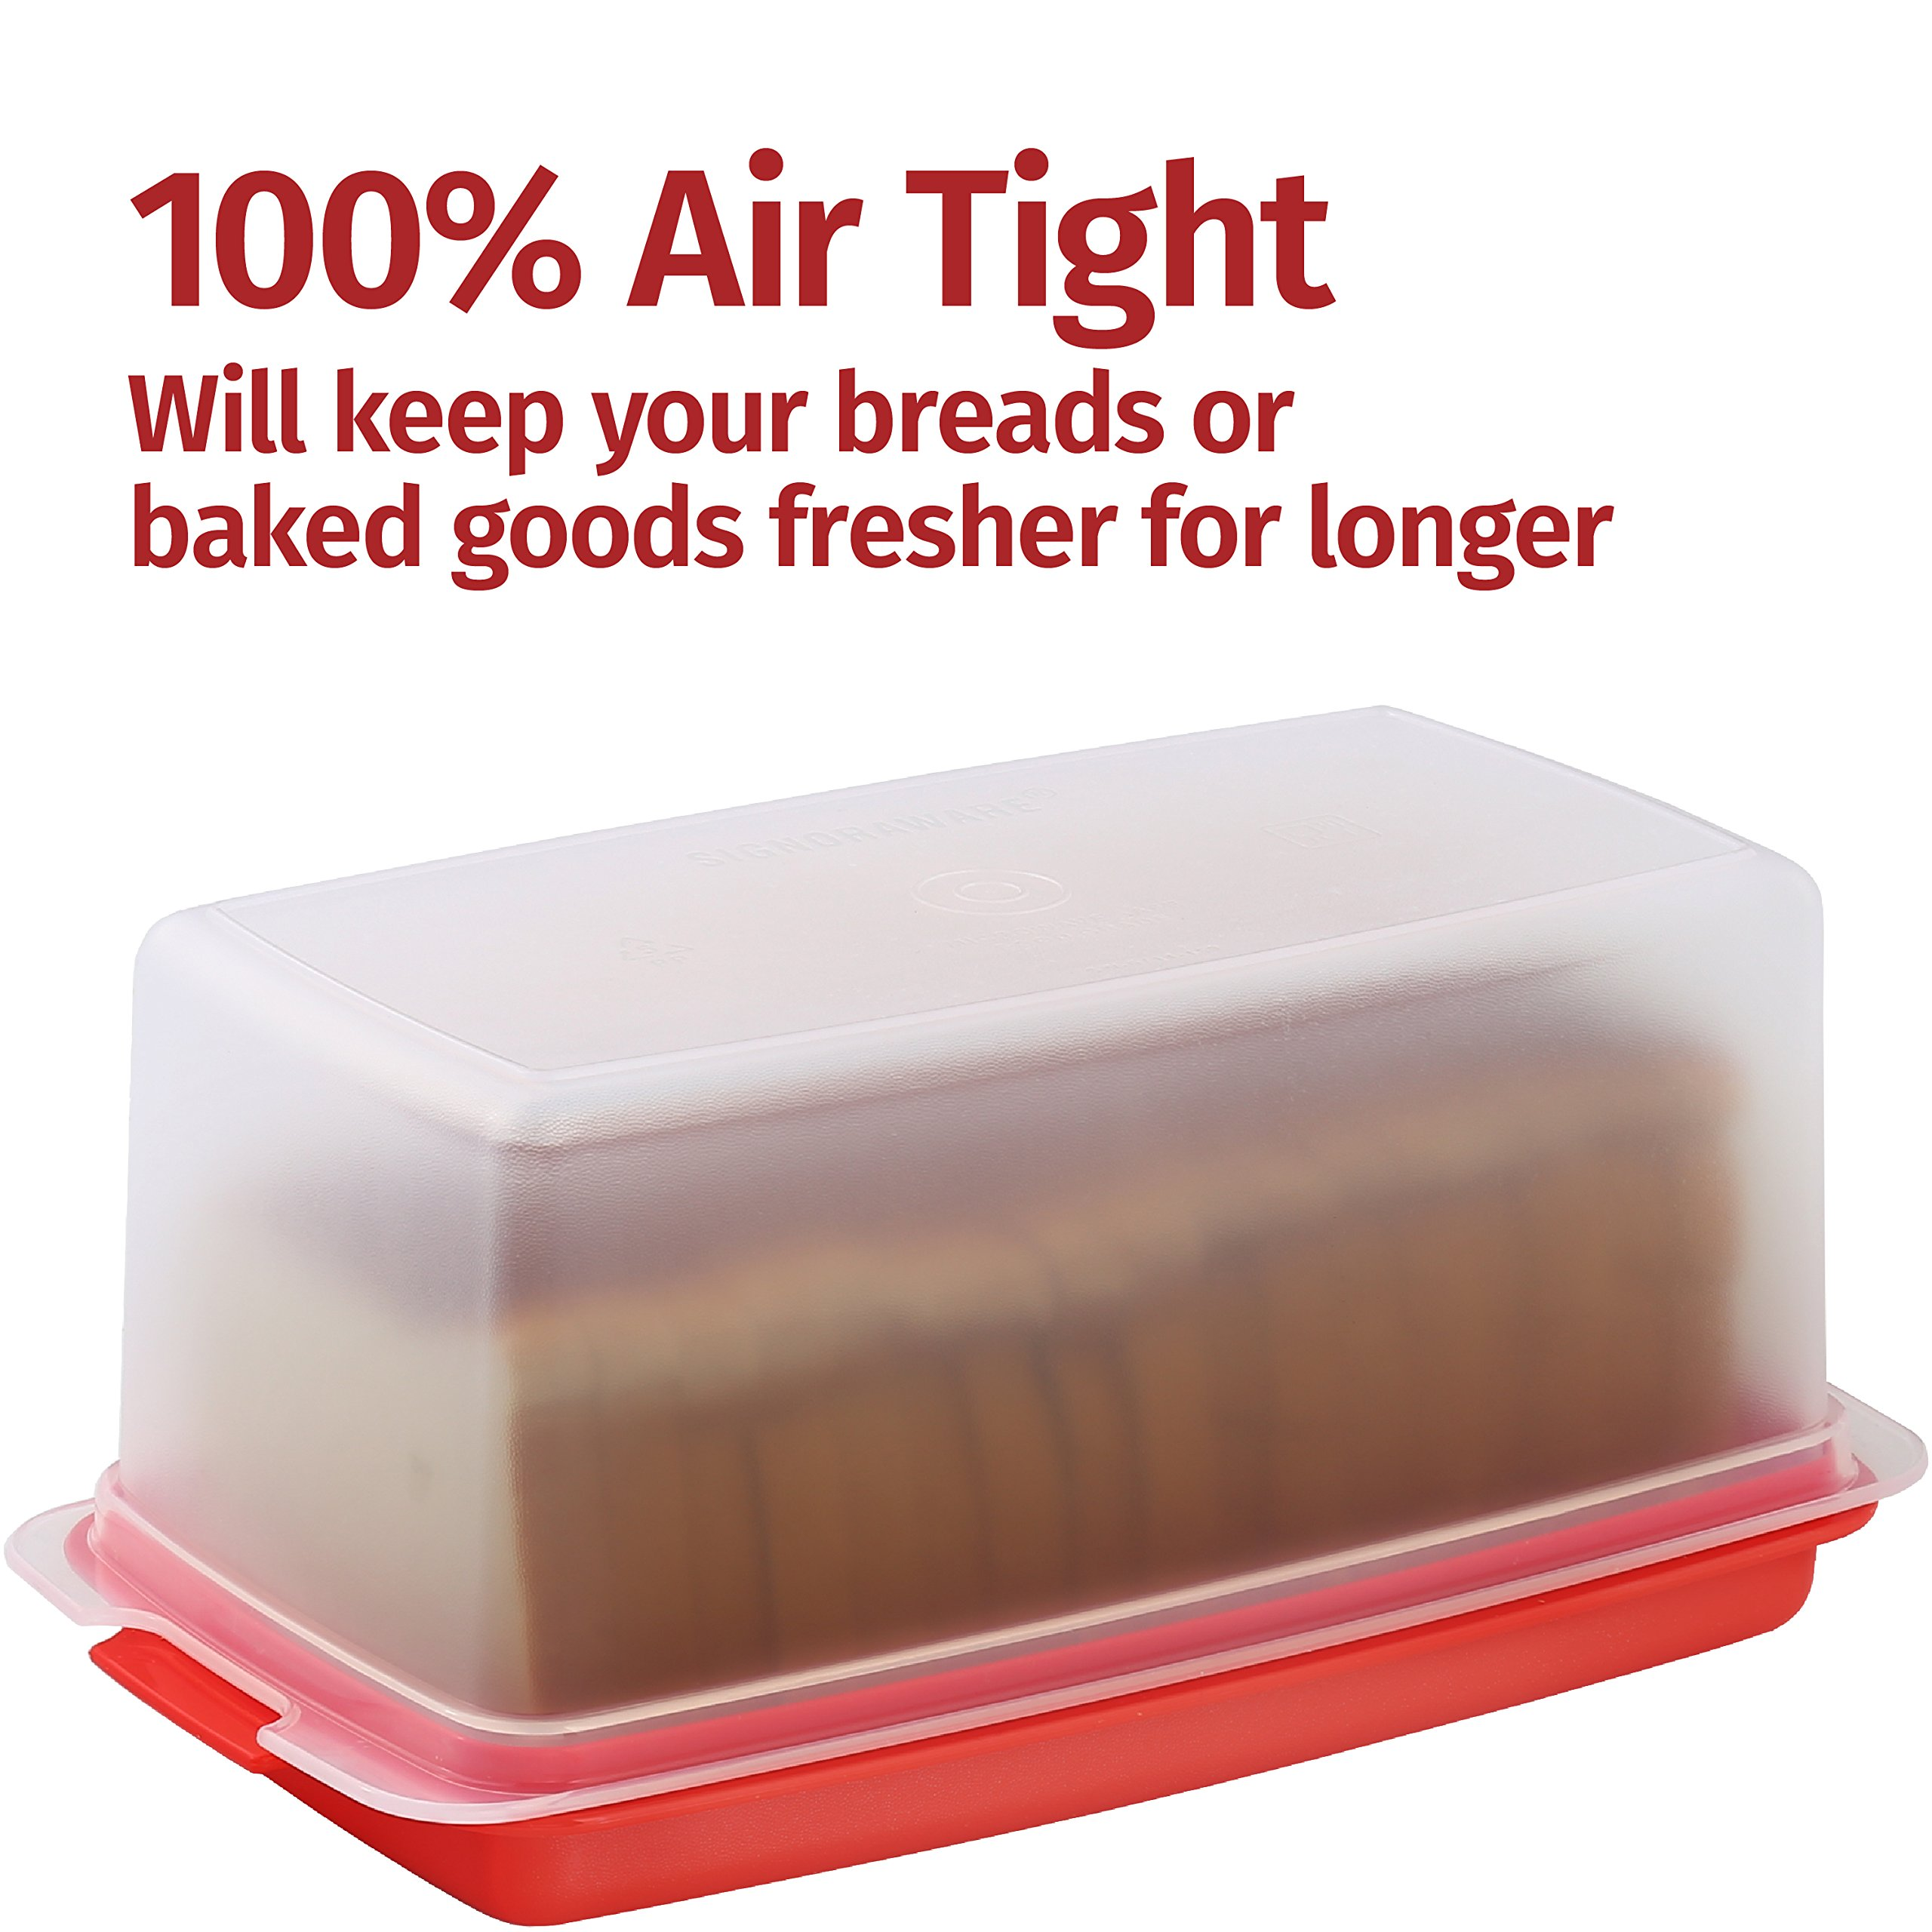 Signoraware Bread Box - Plastic Food Storage Container, Keeps Bread Fresh and great for Table Serving